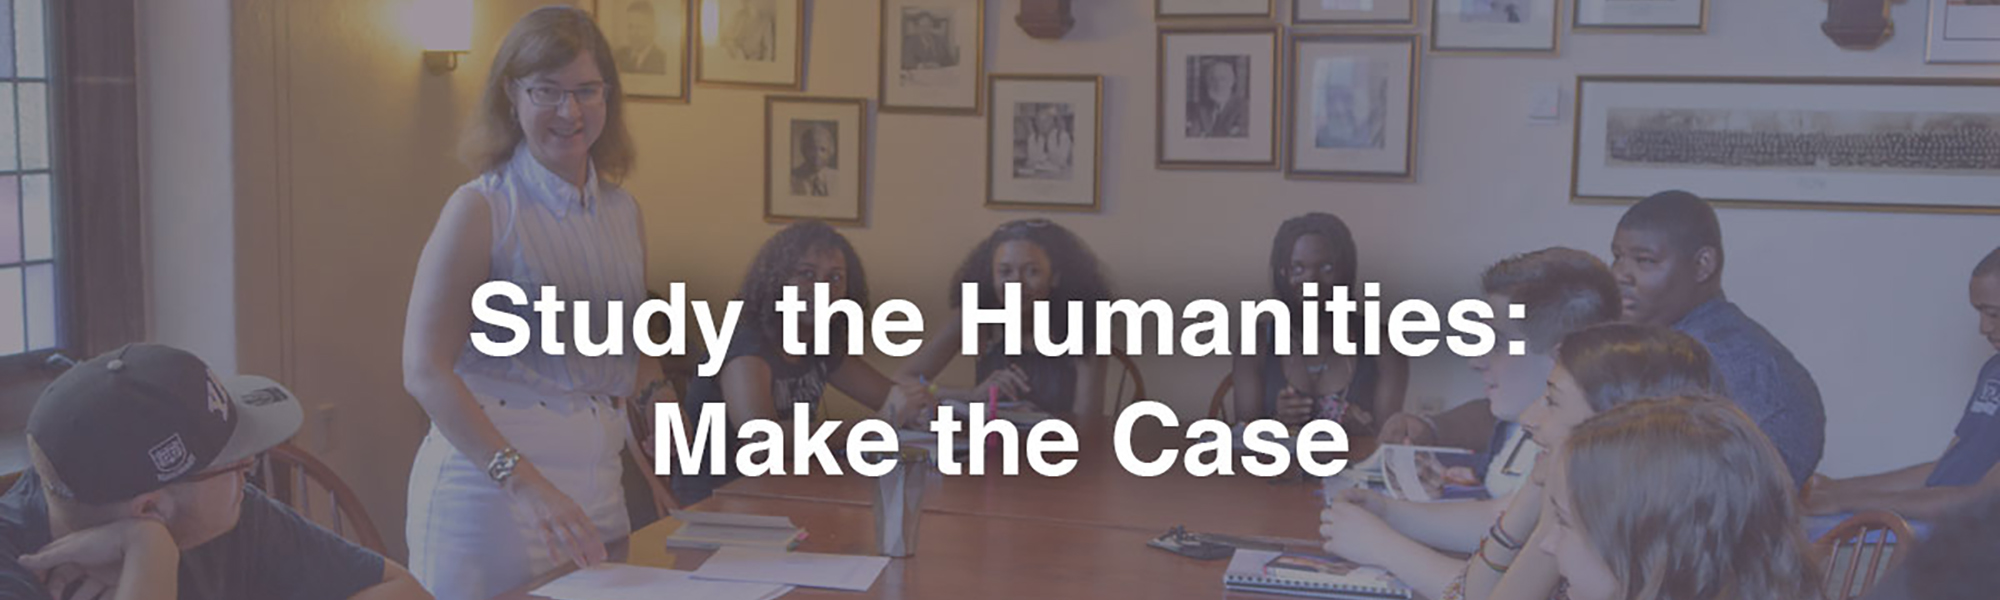 Make the case for studying the humanities as an undergraduate!